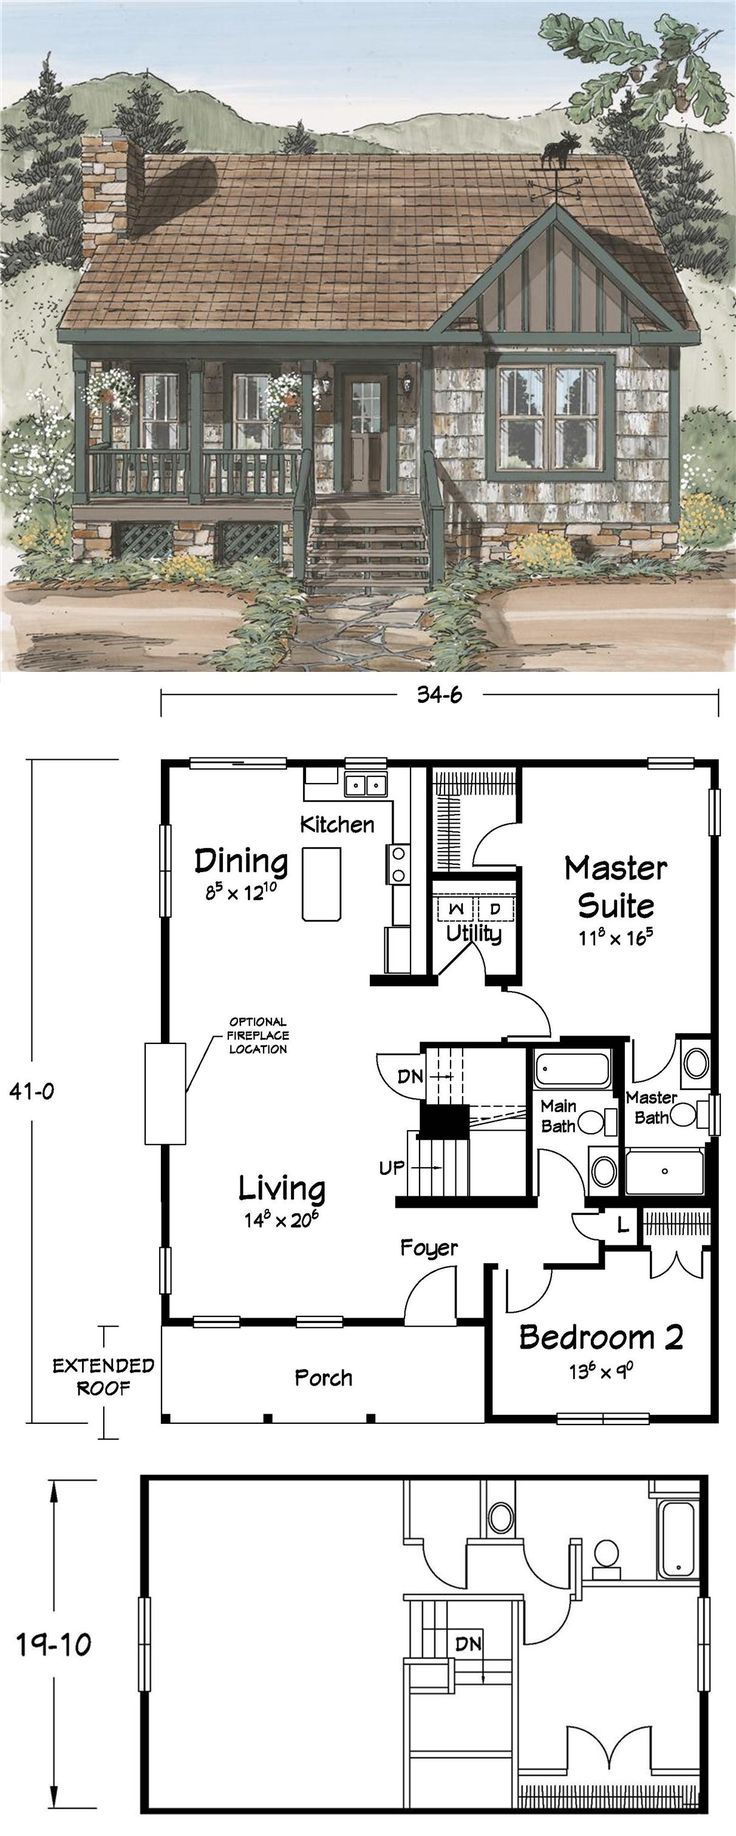 Cute floor plans tiny homes pinterest cabin small for Cottage floor plans